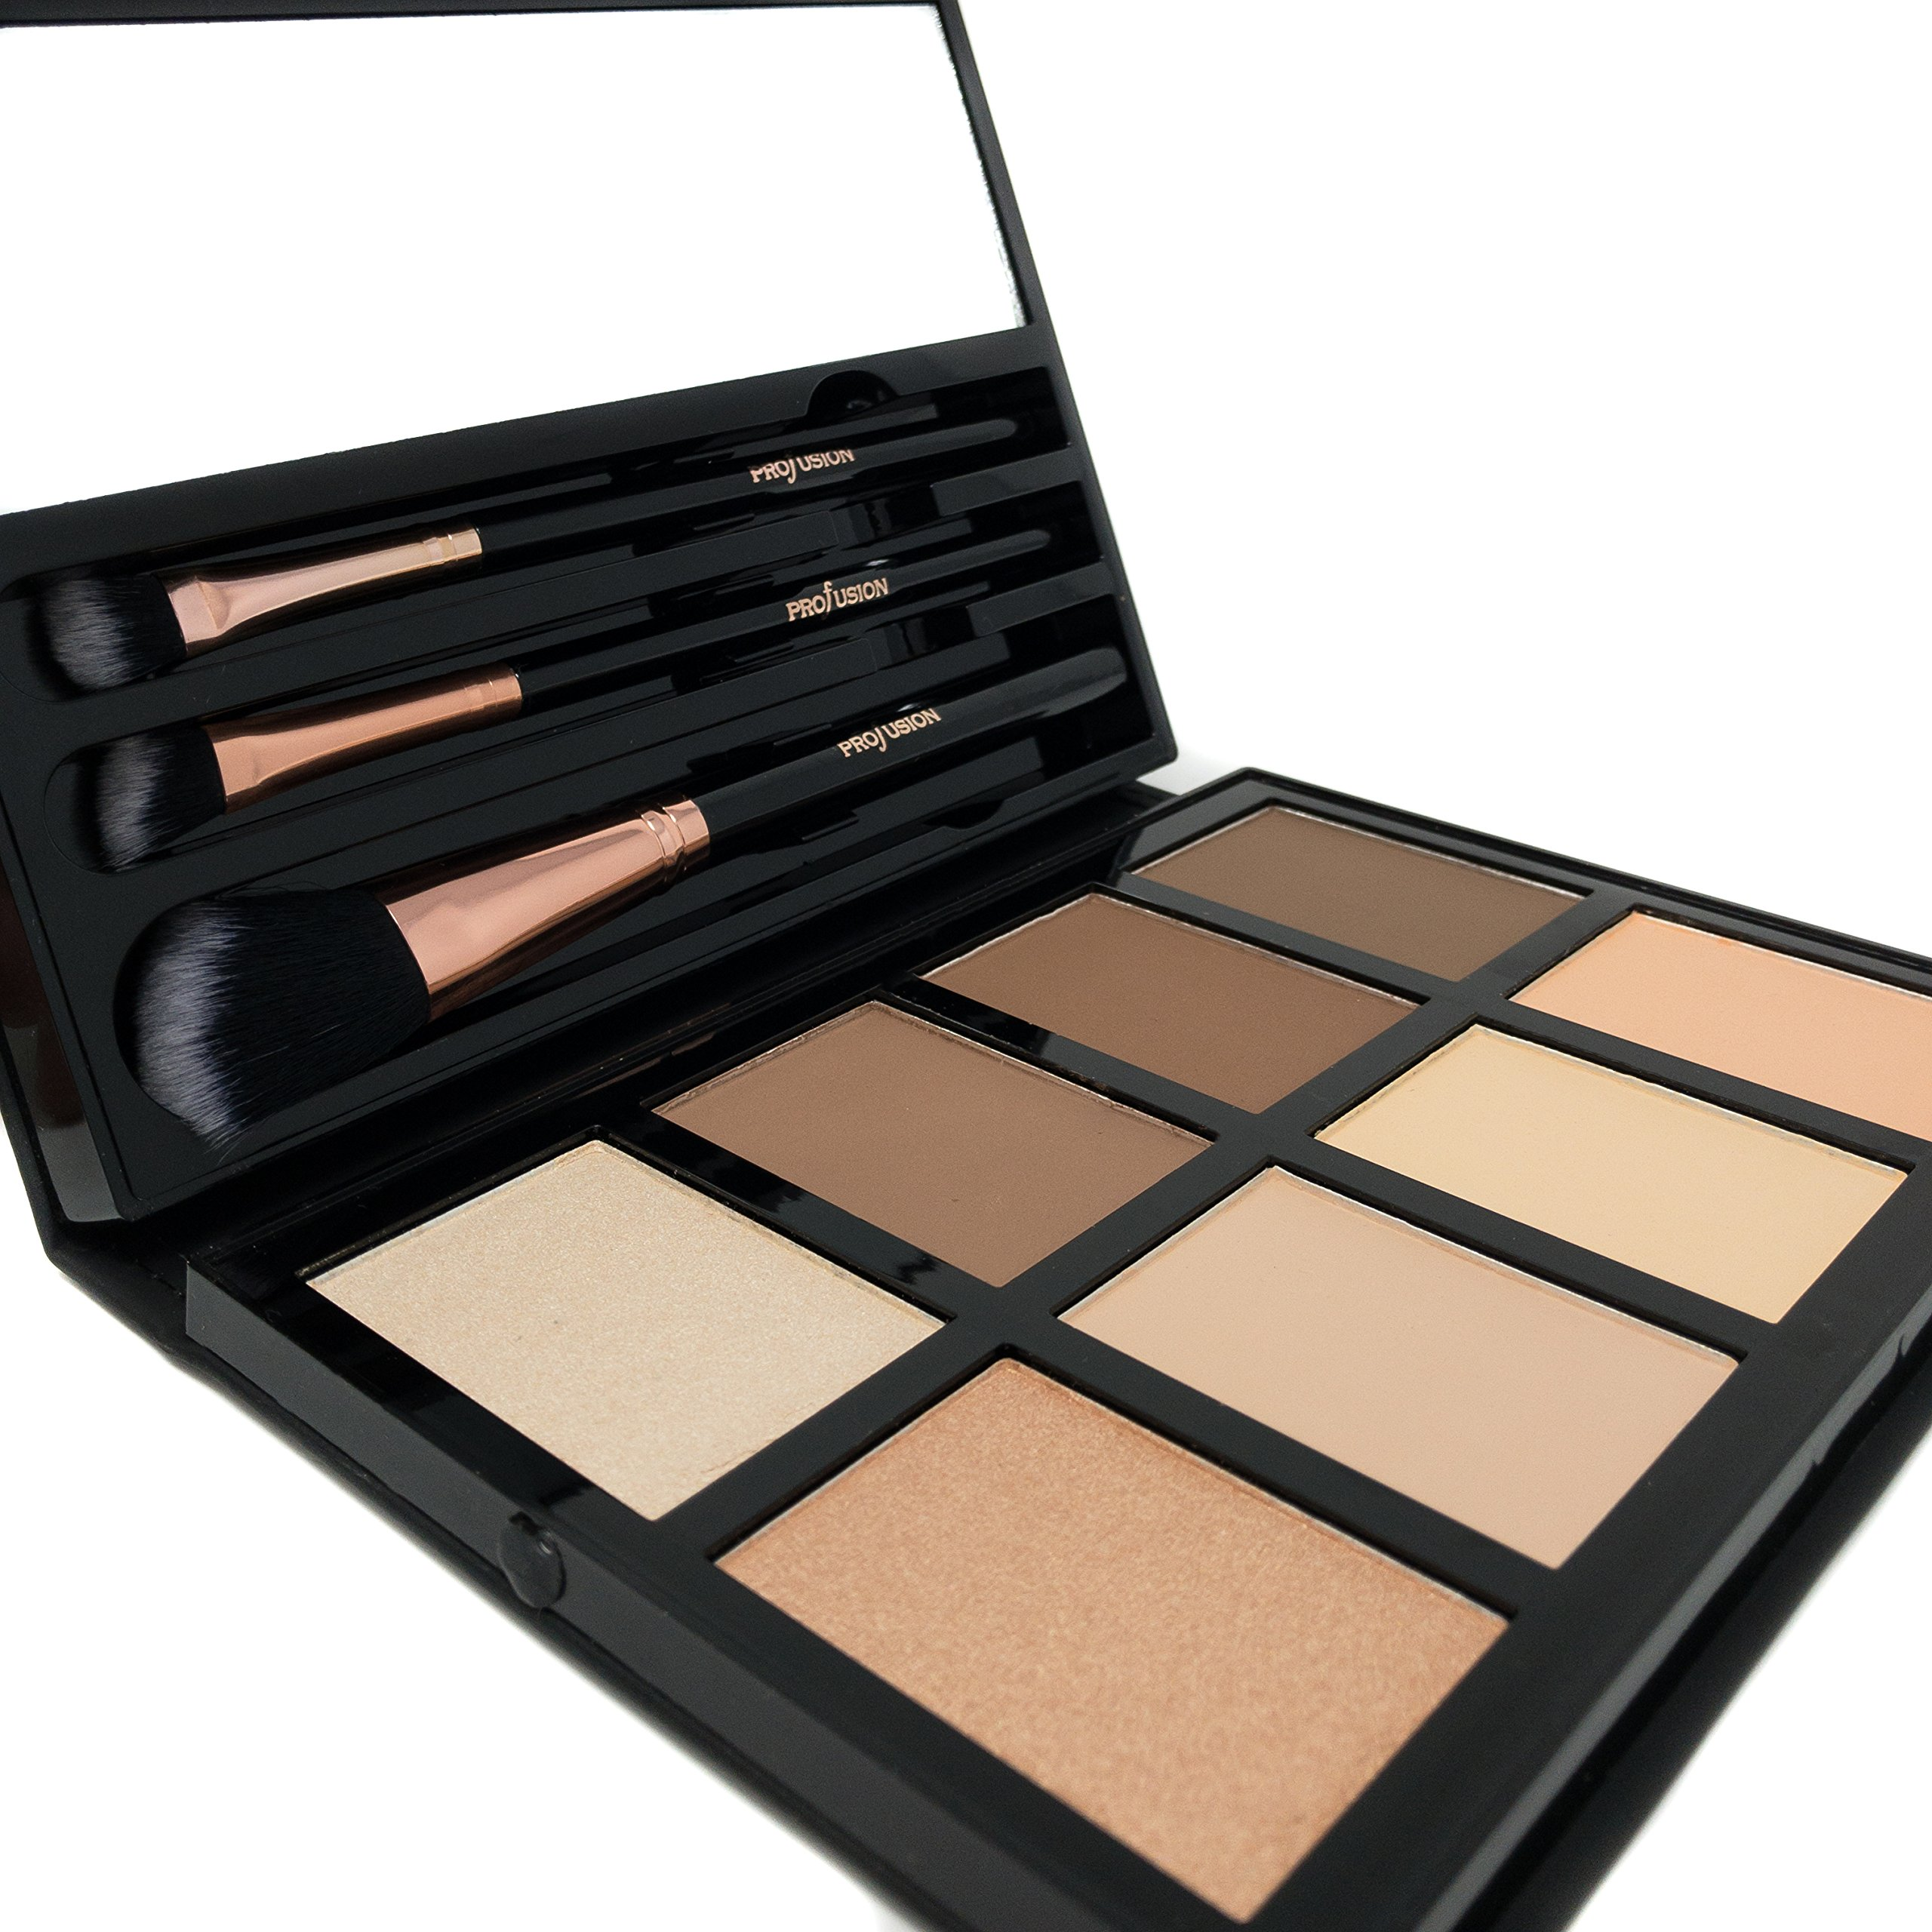 Profusion Cosmetics - Contour - Professional 8 Color Palette - Face Powder Highlighter Bronzer Makeup Kit Brushes Included - Champagne Highlight Nutmeg Ivory Peach Pale Gala Moonstone Java Ebony by Profusion Cosmetics (Image #7)